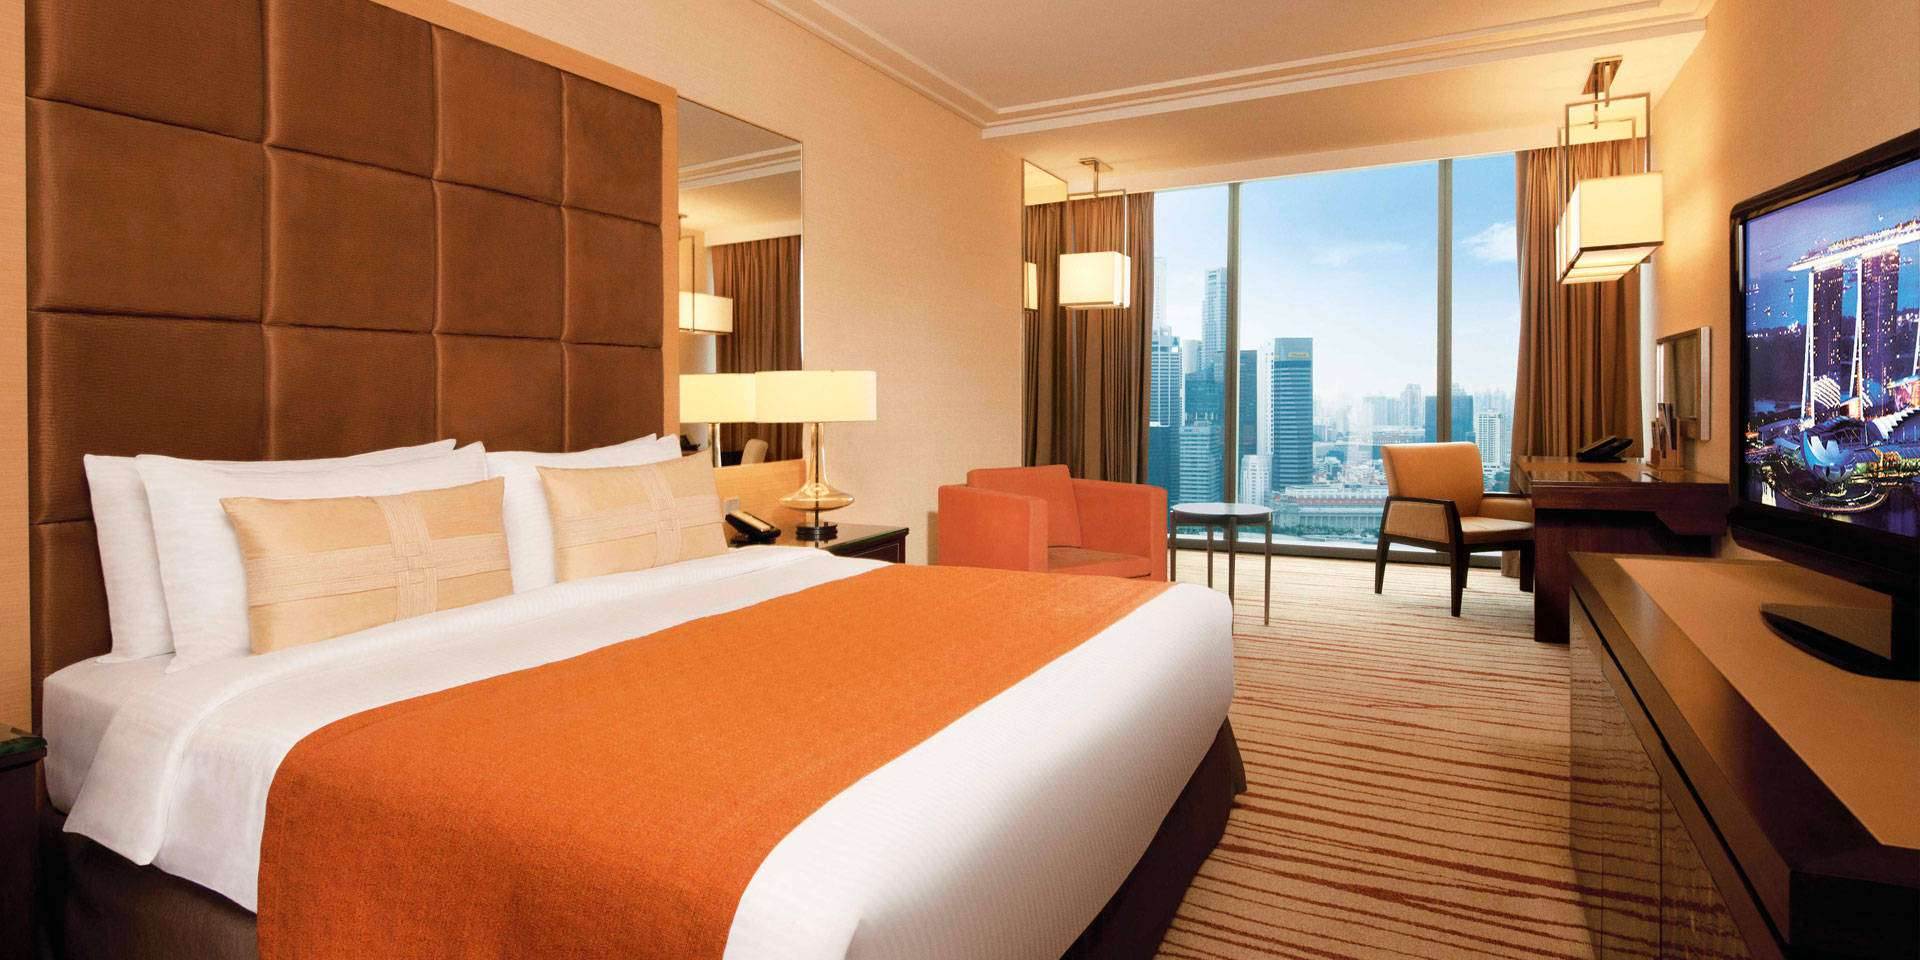 Premier Room at Marina Bay Sands with King Bed and City View